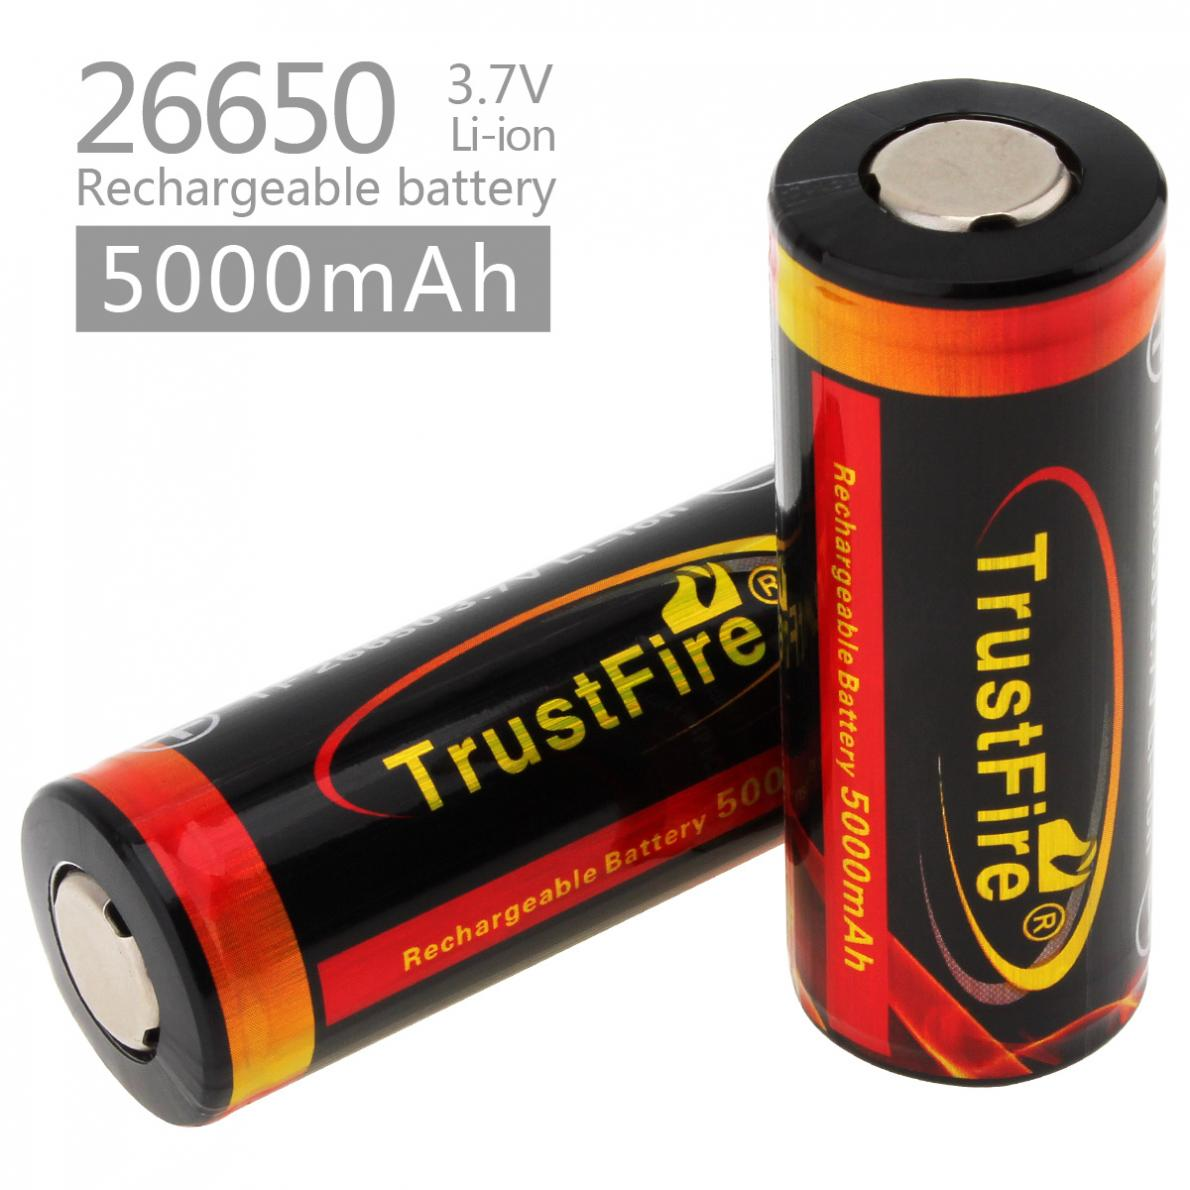 TrustFire 2pcs 3.7V 26650 High Capacity 5000mAh Rechargeable Li-ion Battery with Protected PCB for LED Flashlights Headlamps все цены